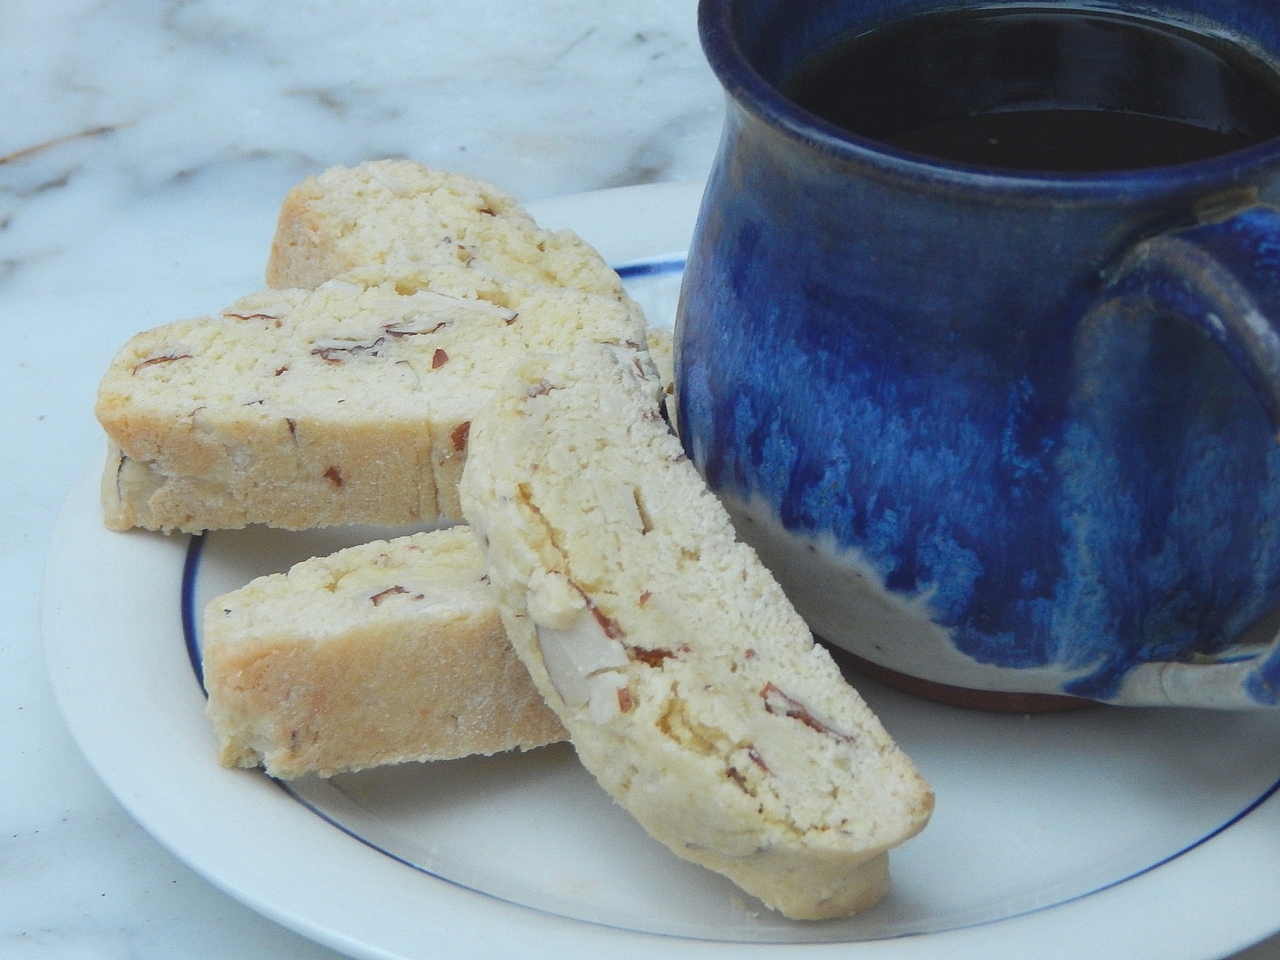 Biscotti pair well with tea, coffee, or even an evening alcoholic sipper. Get biscotti recipes at TwiceasTasty.com.